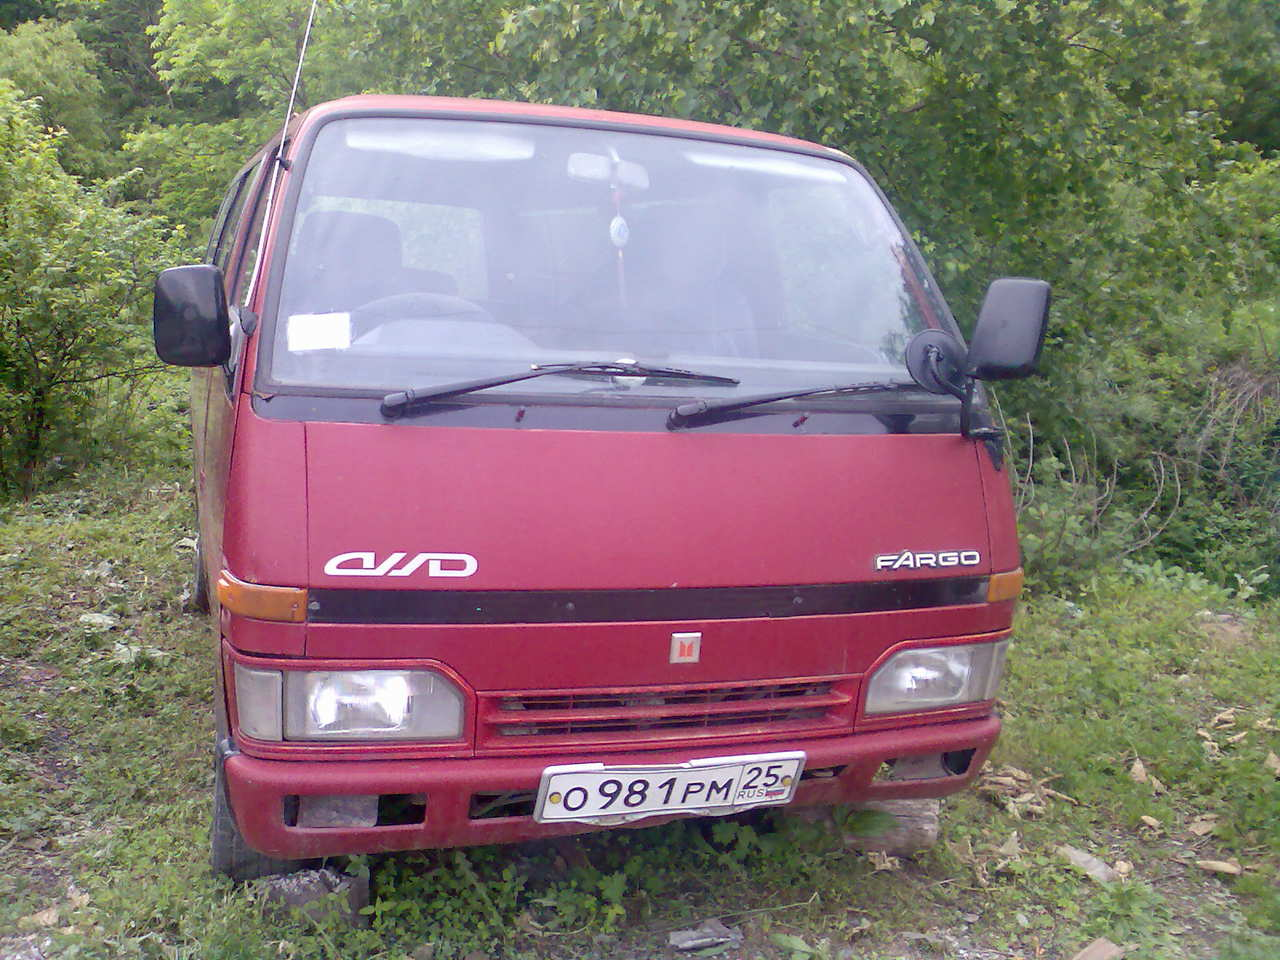 Isuzu wfr photo - 2